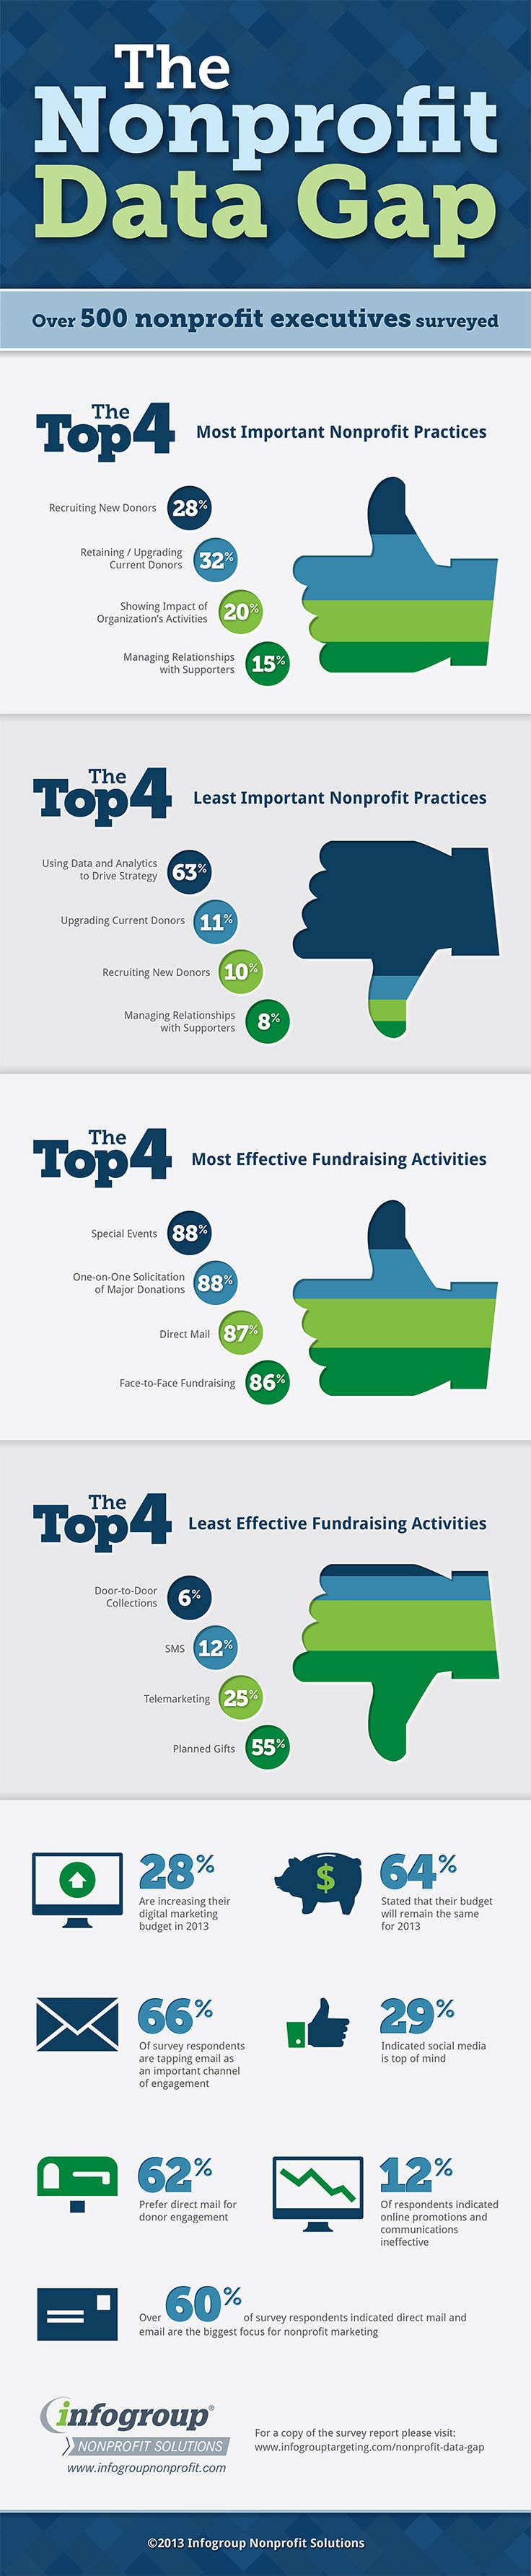 5 Technology Stats From Over 500 Nonprofit Executives